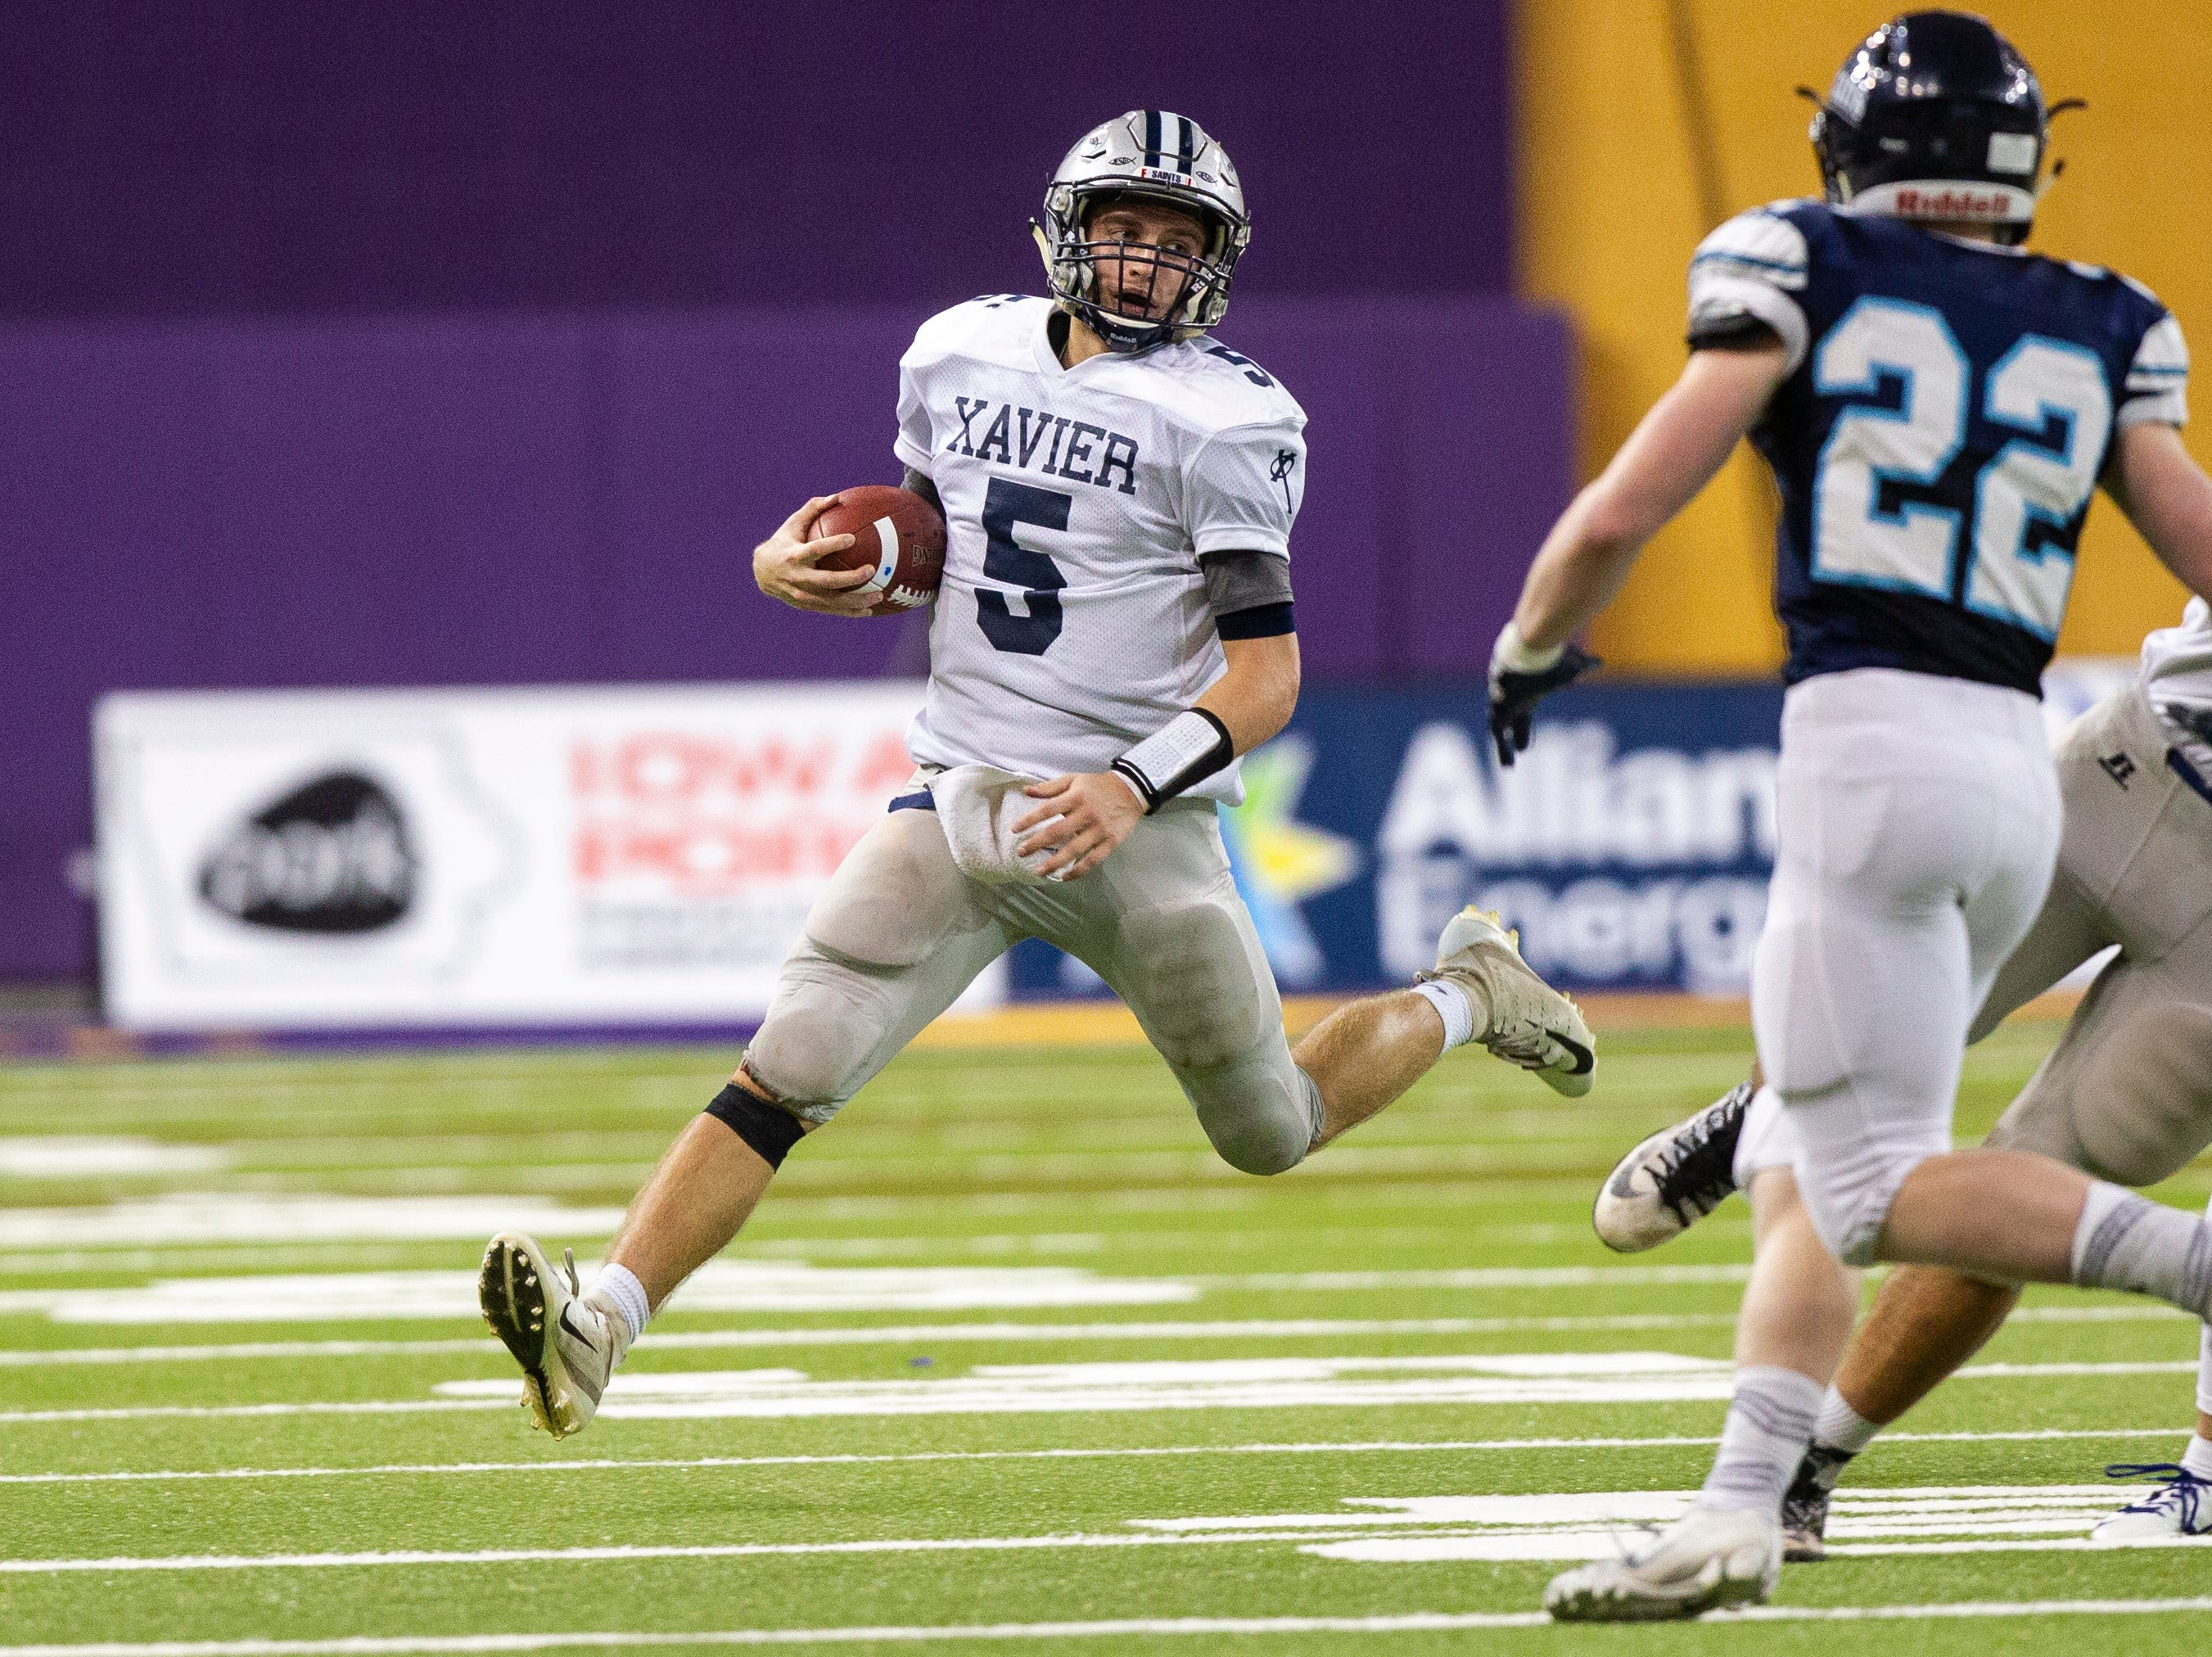 Cedar Rapids Xavier's Quinn Schulte (5) runs during a Class 3A semi finals on Thursday, Nov. 8, 2018, at the UNI-Dome in Cedar Falls.